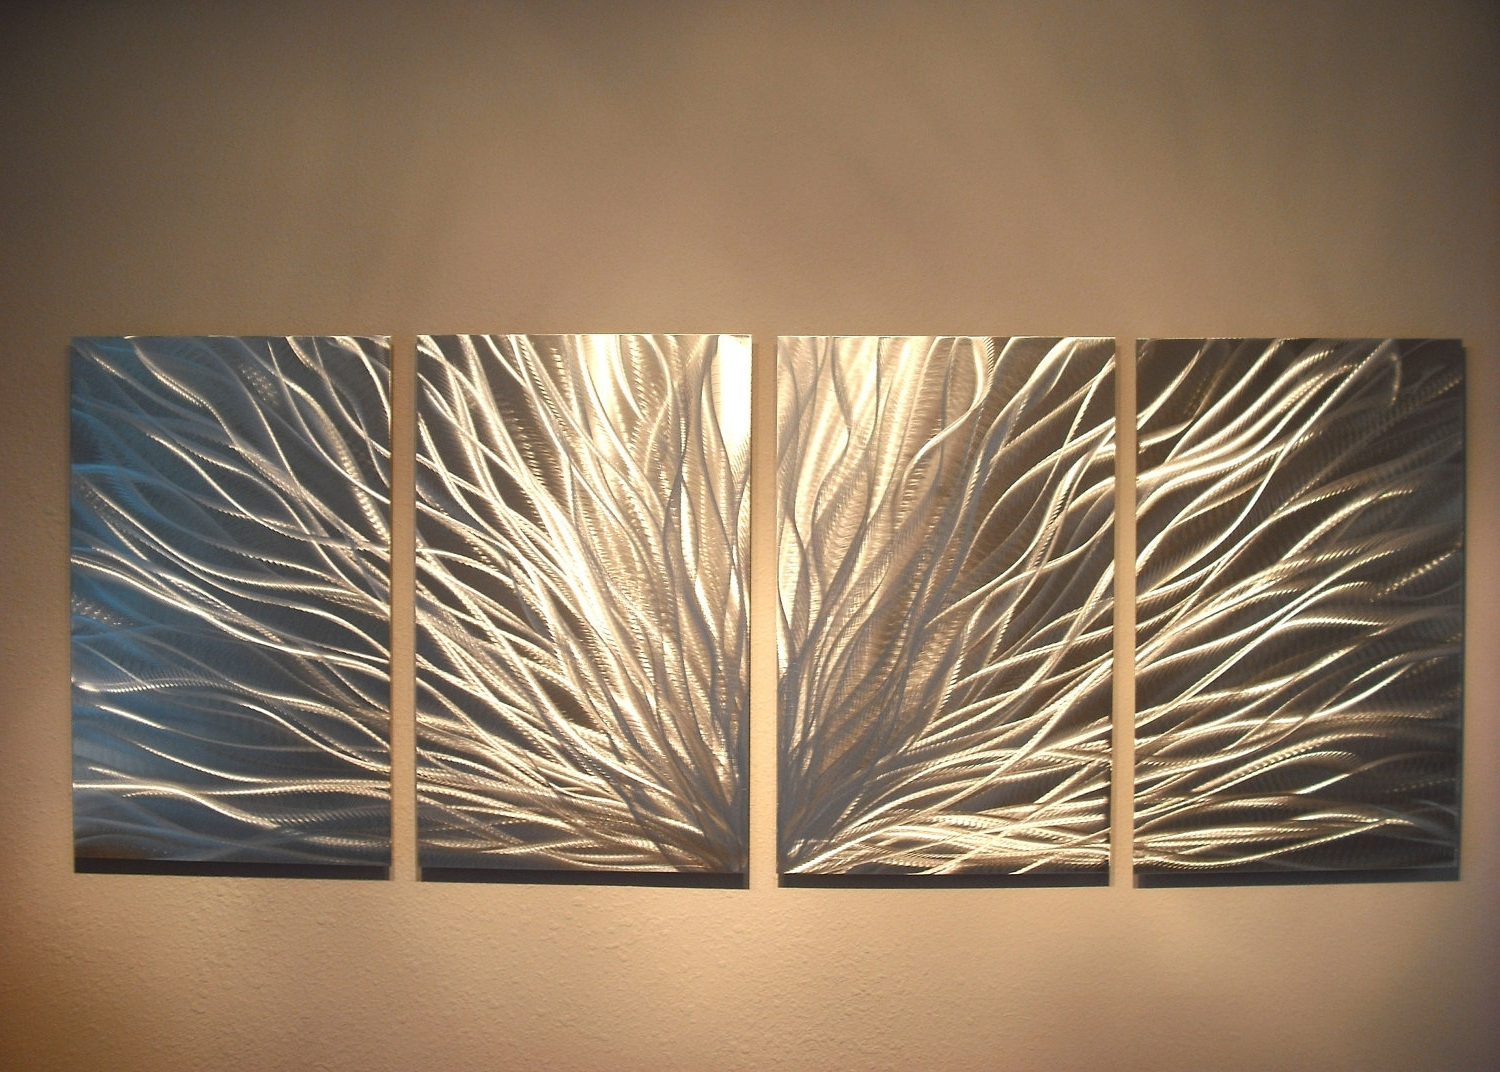 Abstract Metal Wall Art With Fashionable Radiance – Abstract Metal Wall Art Contemporary Modern Decor On Storenvy (View 8 of 15)